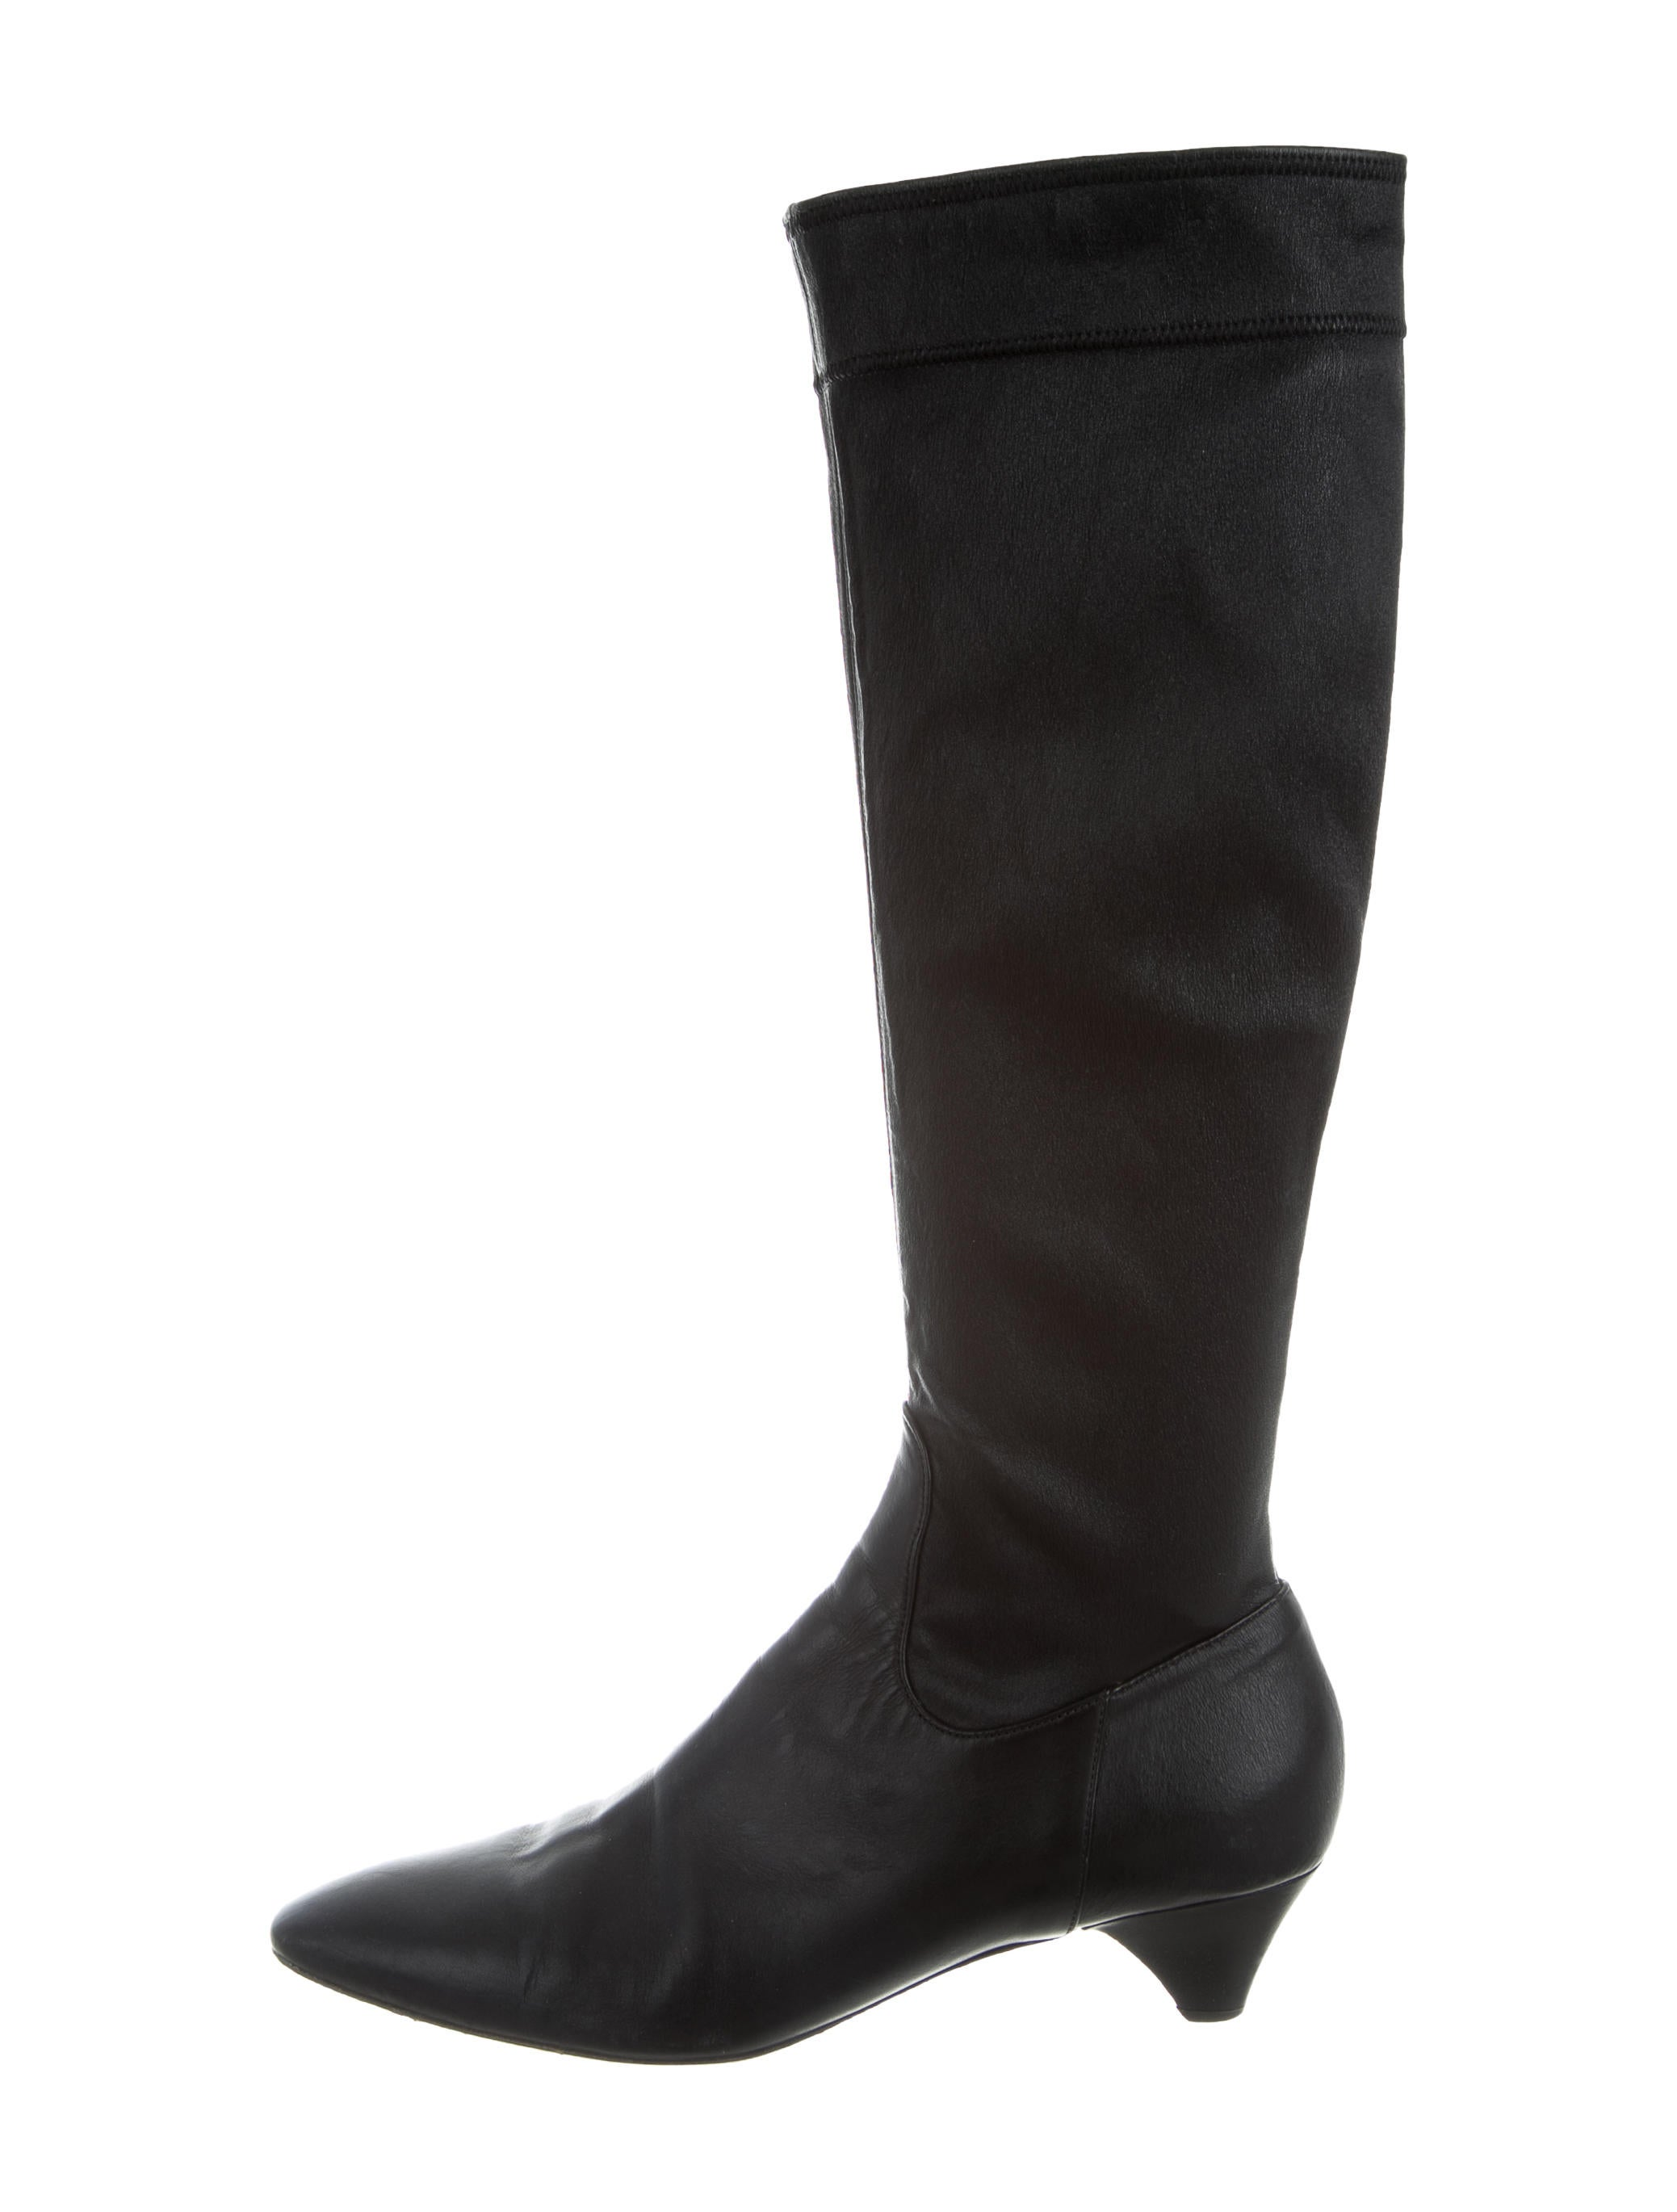 burberry semi pointed toe knee high boots shoes